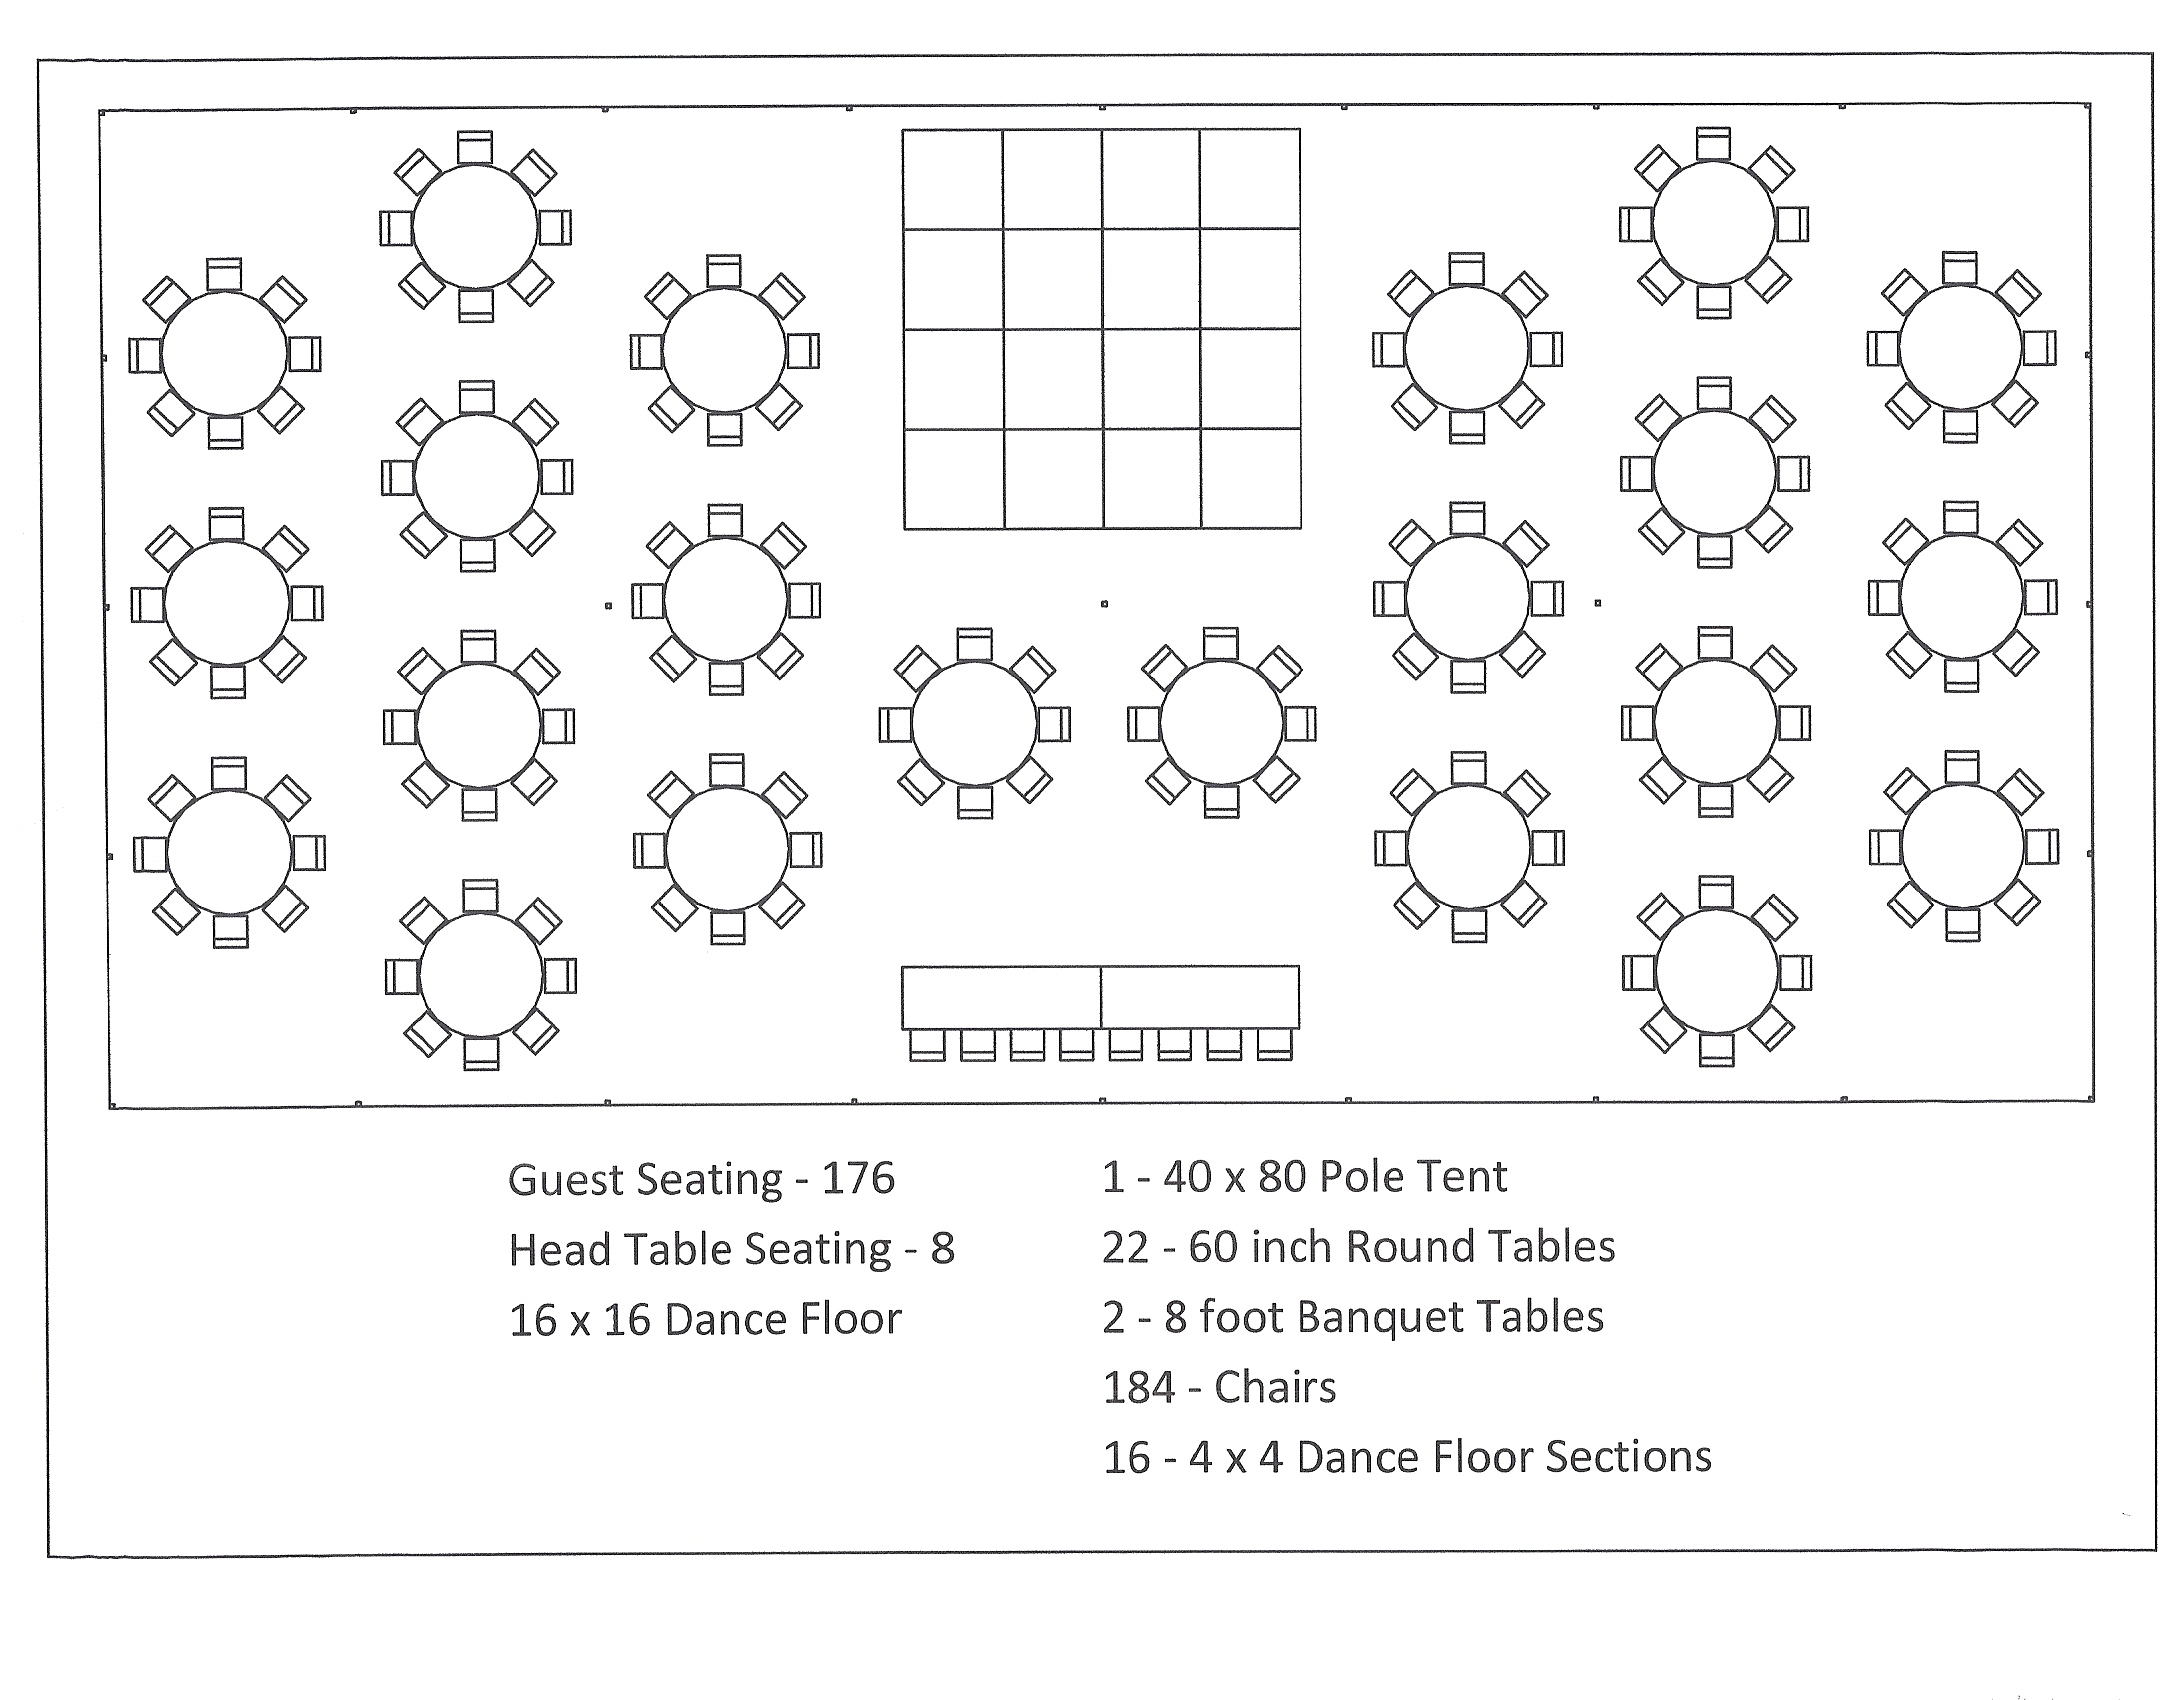 Seating Diagrams Floor Plans